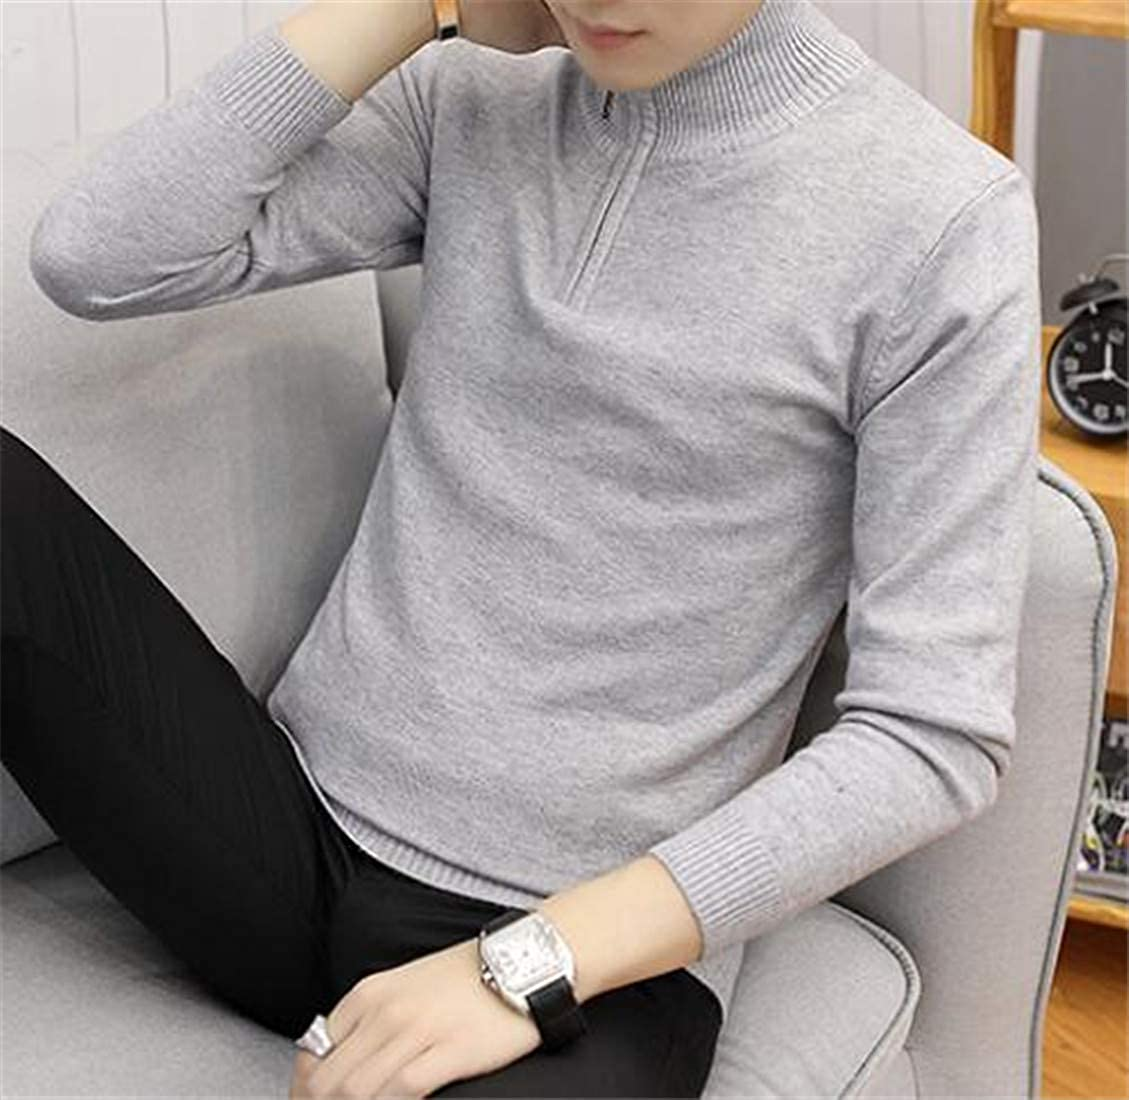 Sweatwater Mens Knitted Mock Turtle Neck Pullover Classic Jumper Zipper Sweater